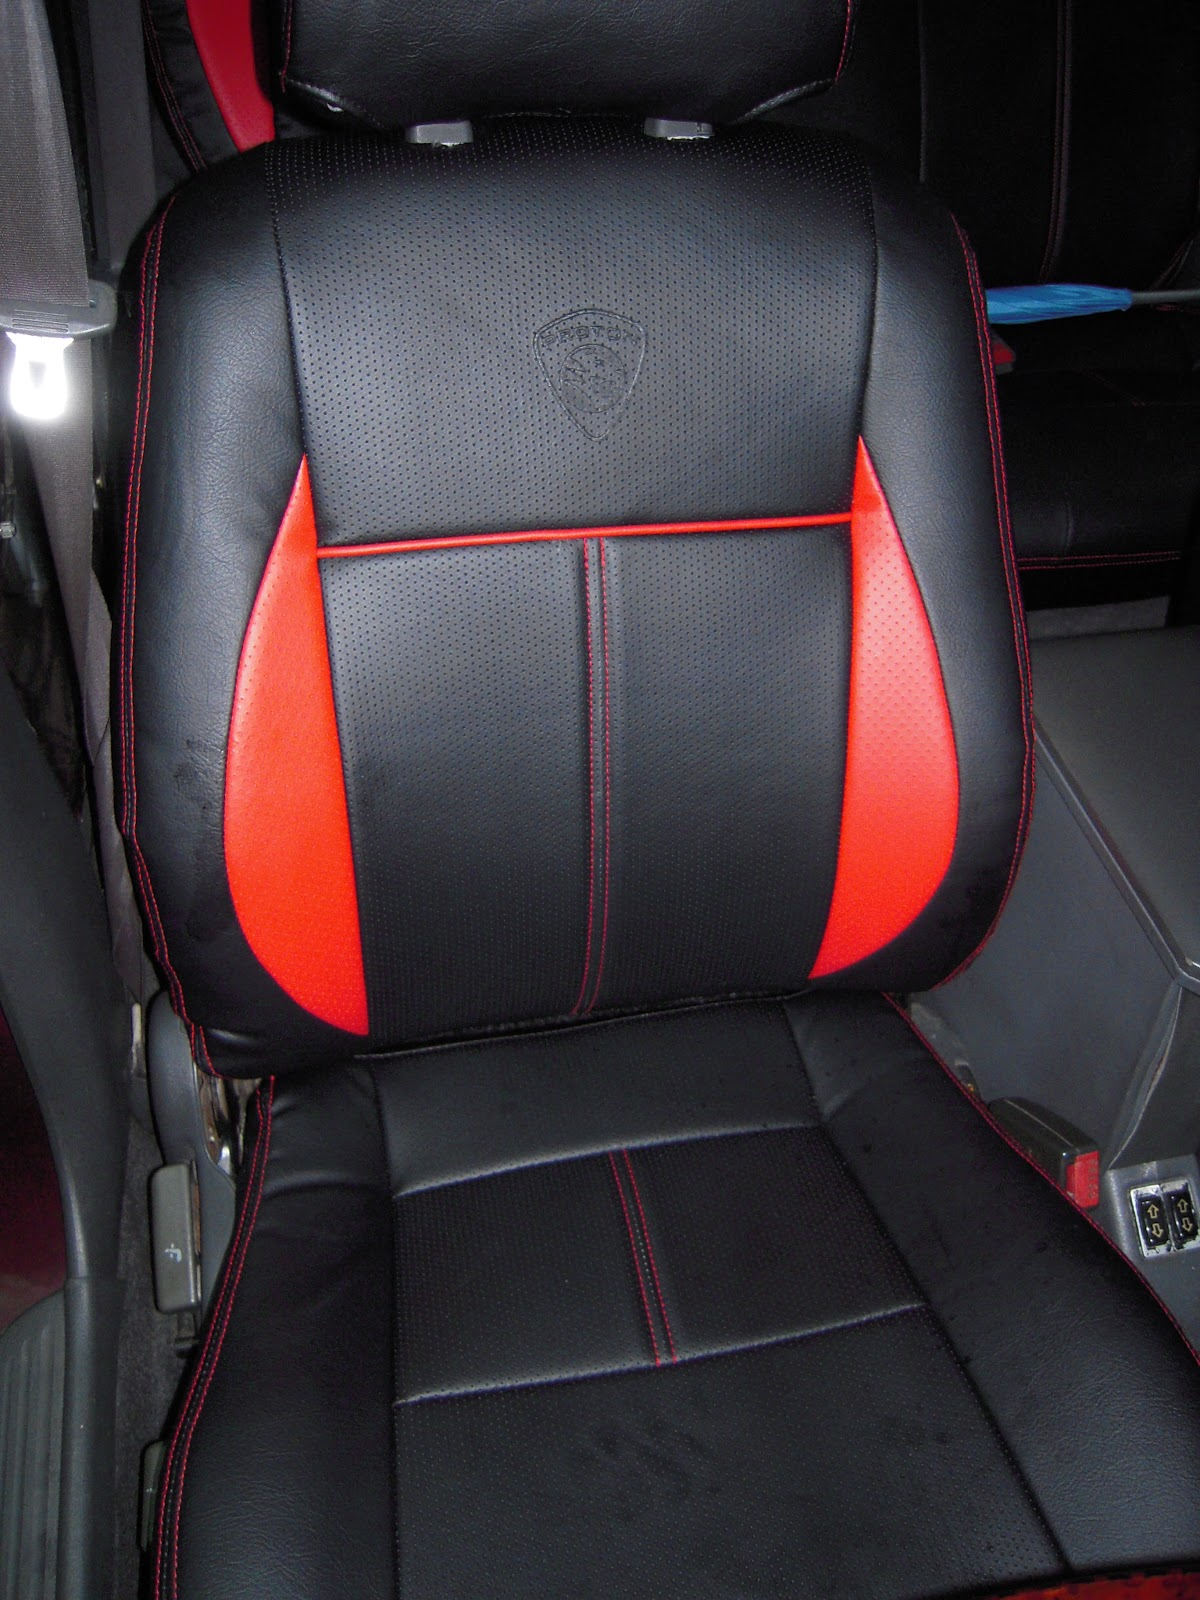 TCA AUDIO CAR ACCESSORIES WIRA SEAT COVER DOOR PANEL